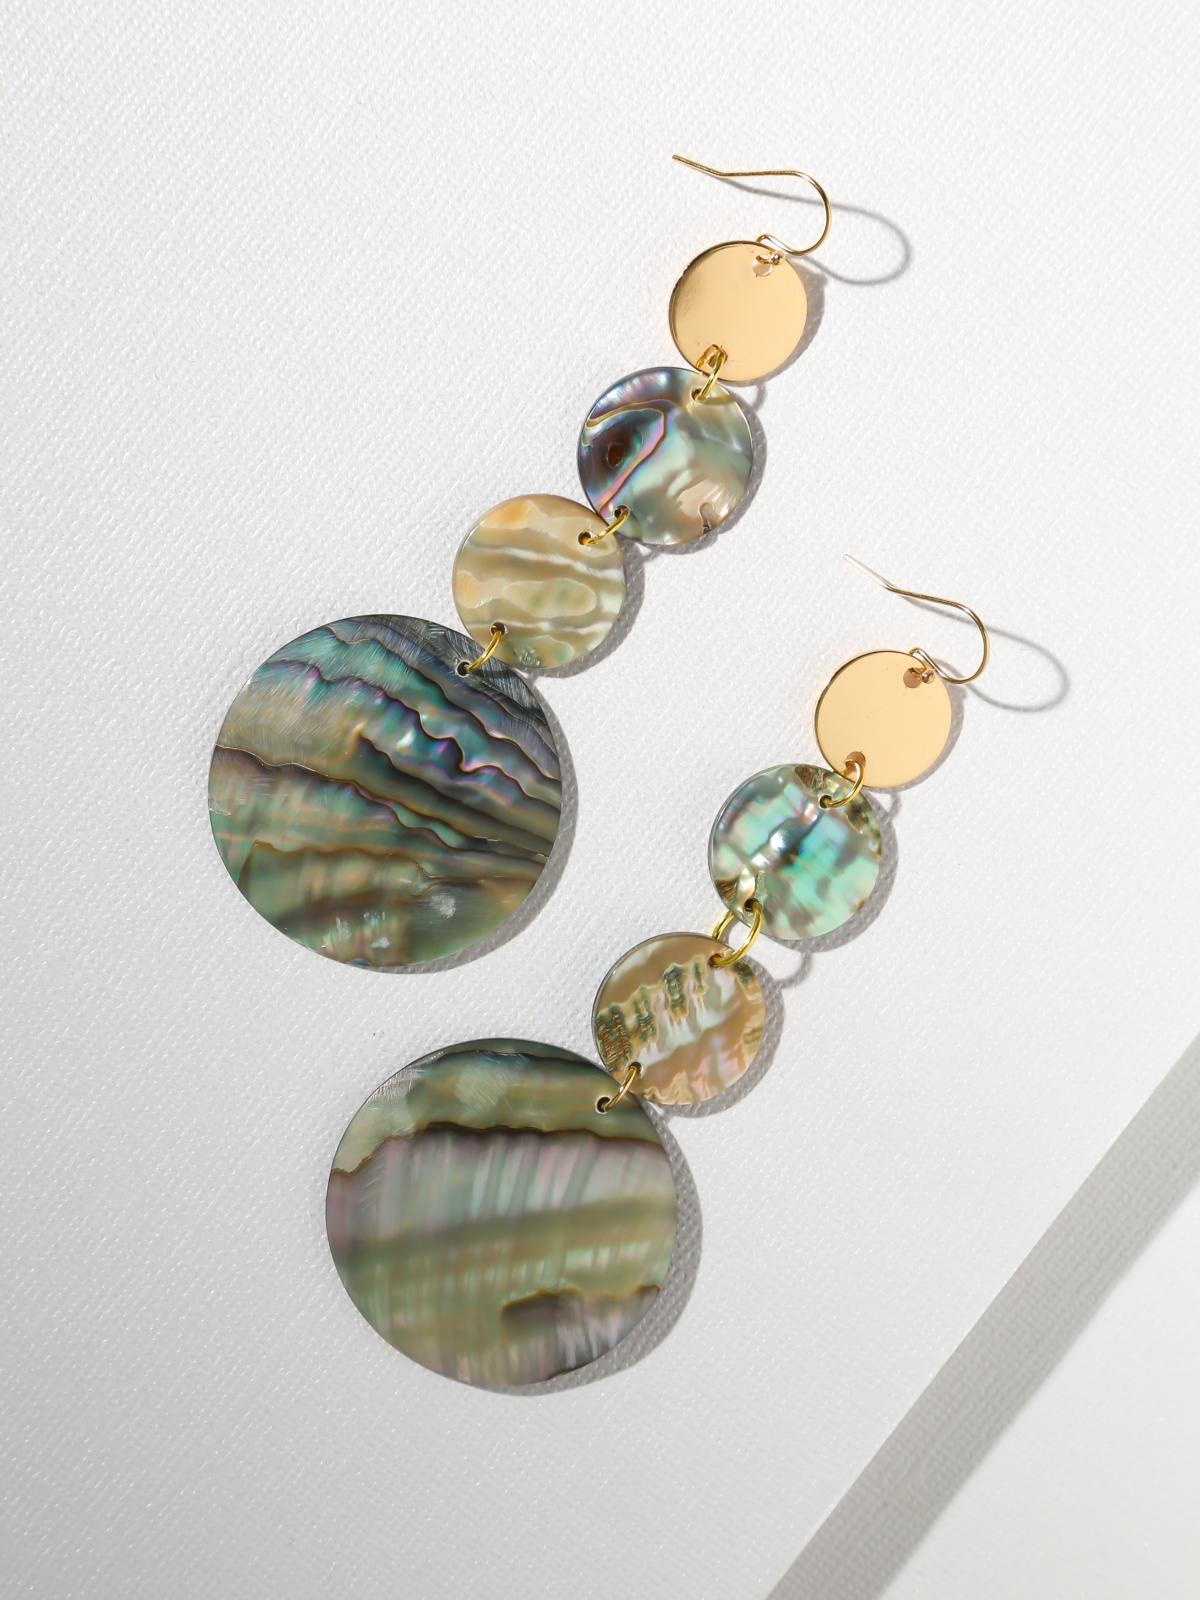 The Mother of Pearl Earrings